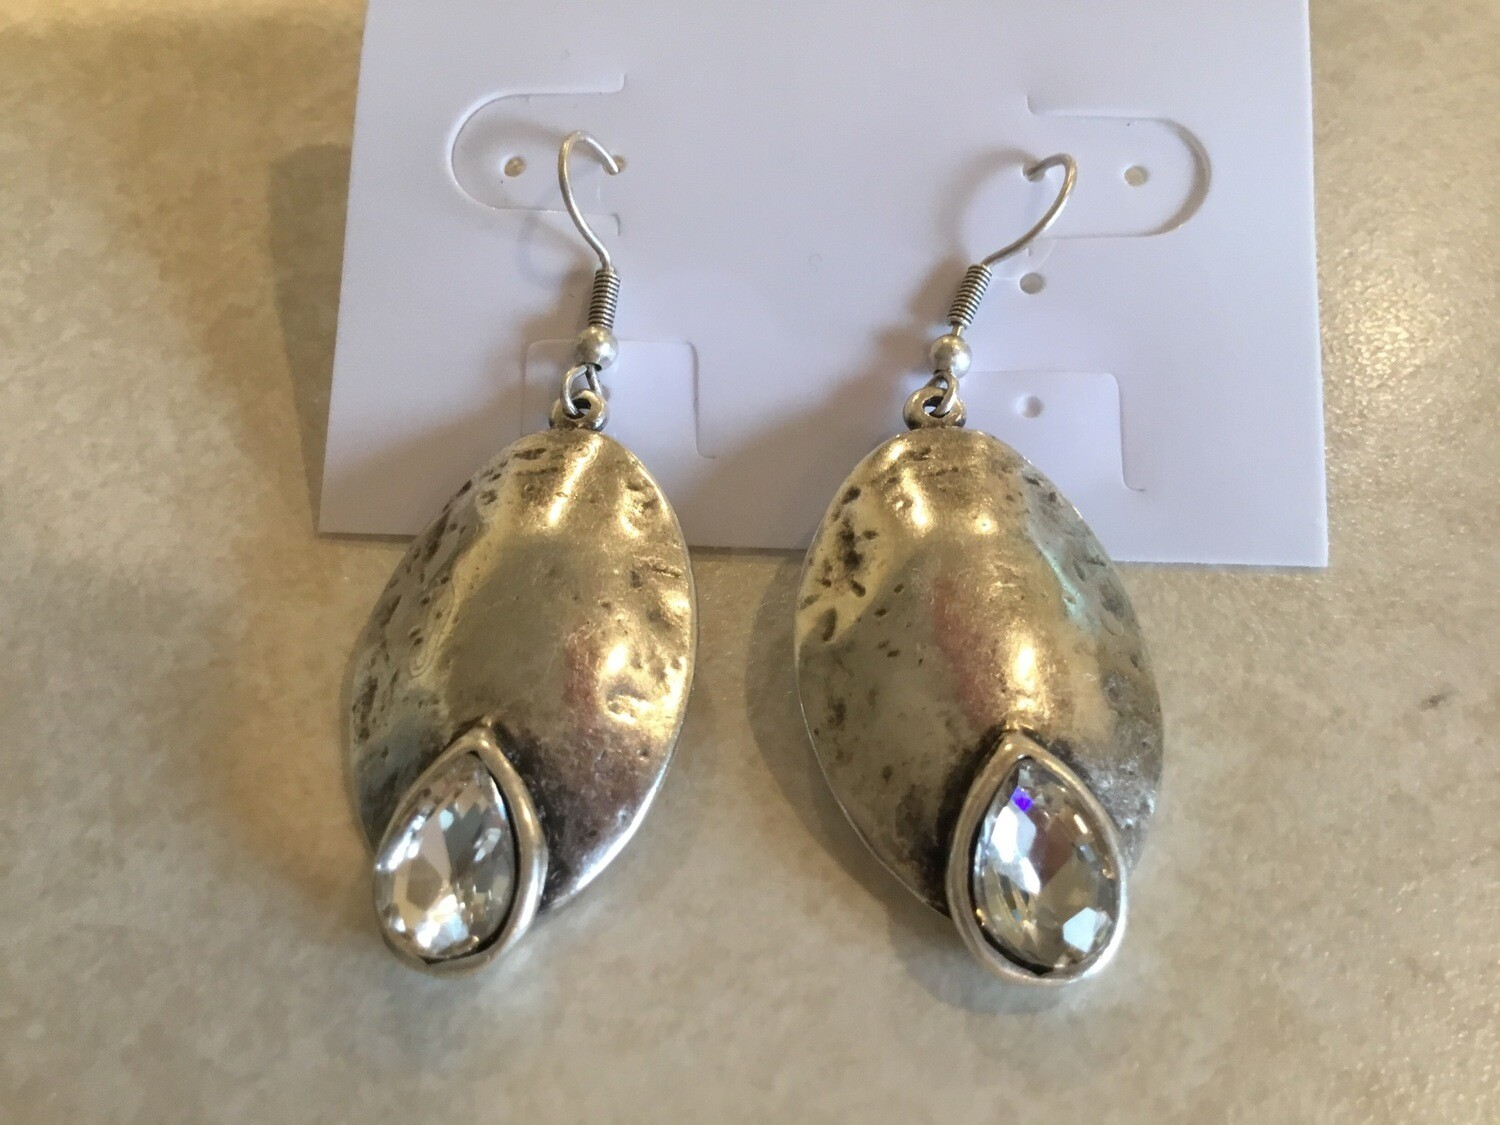 Handmade Pewter  Oval Earrings With Oval Clear Crystals